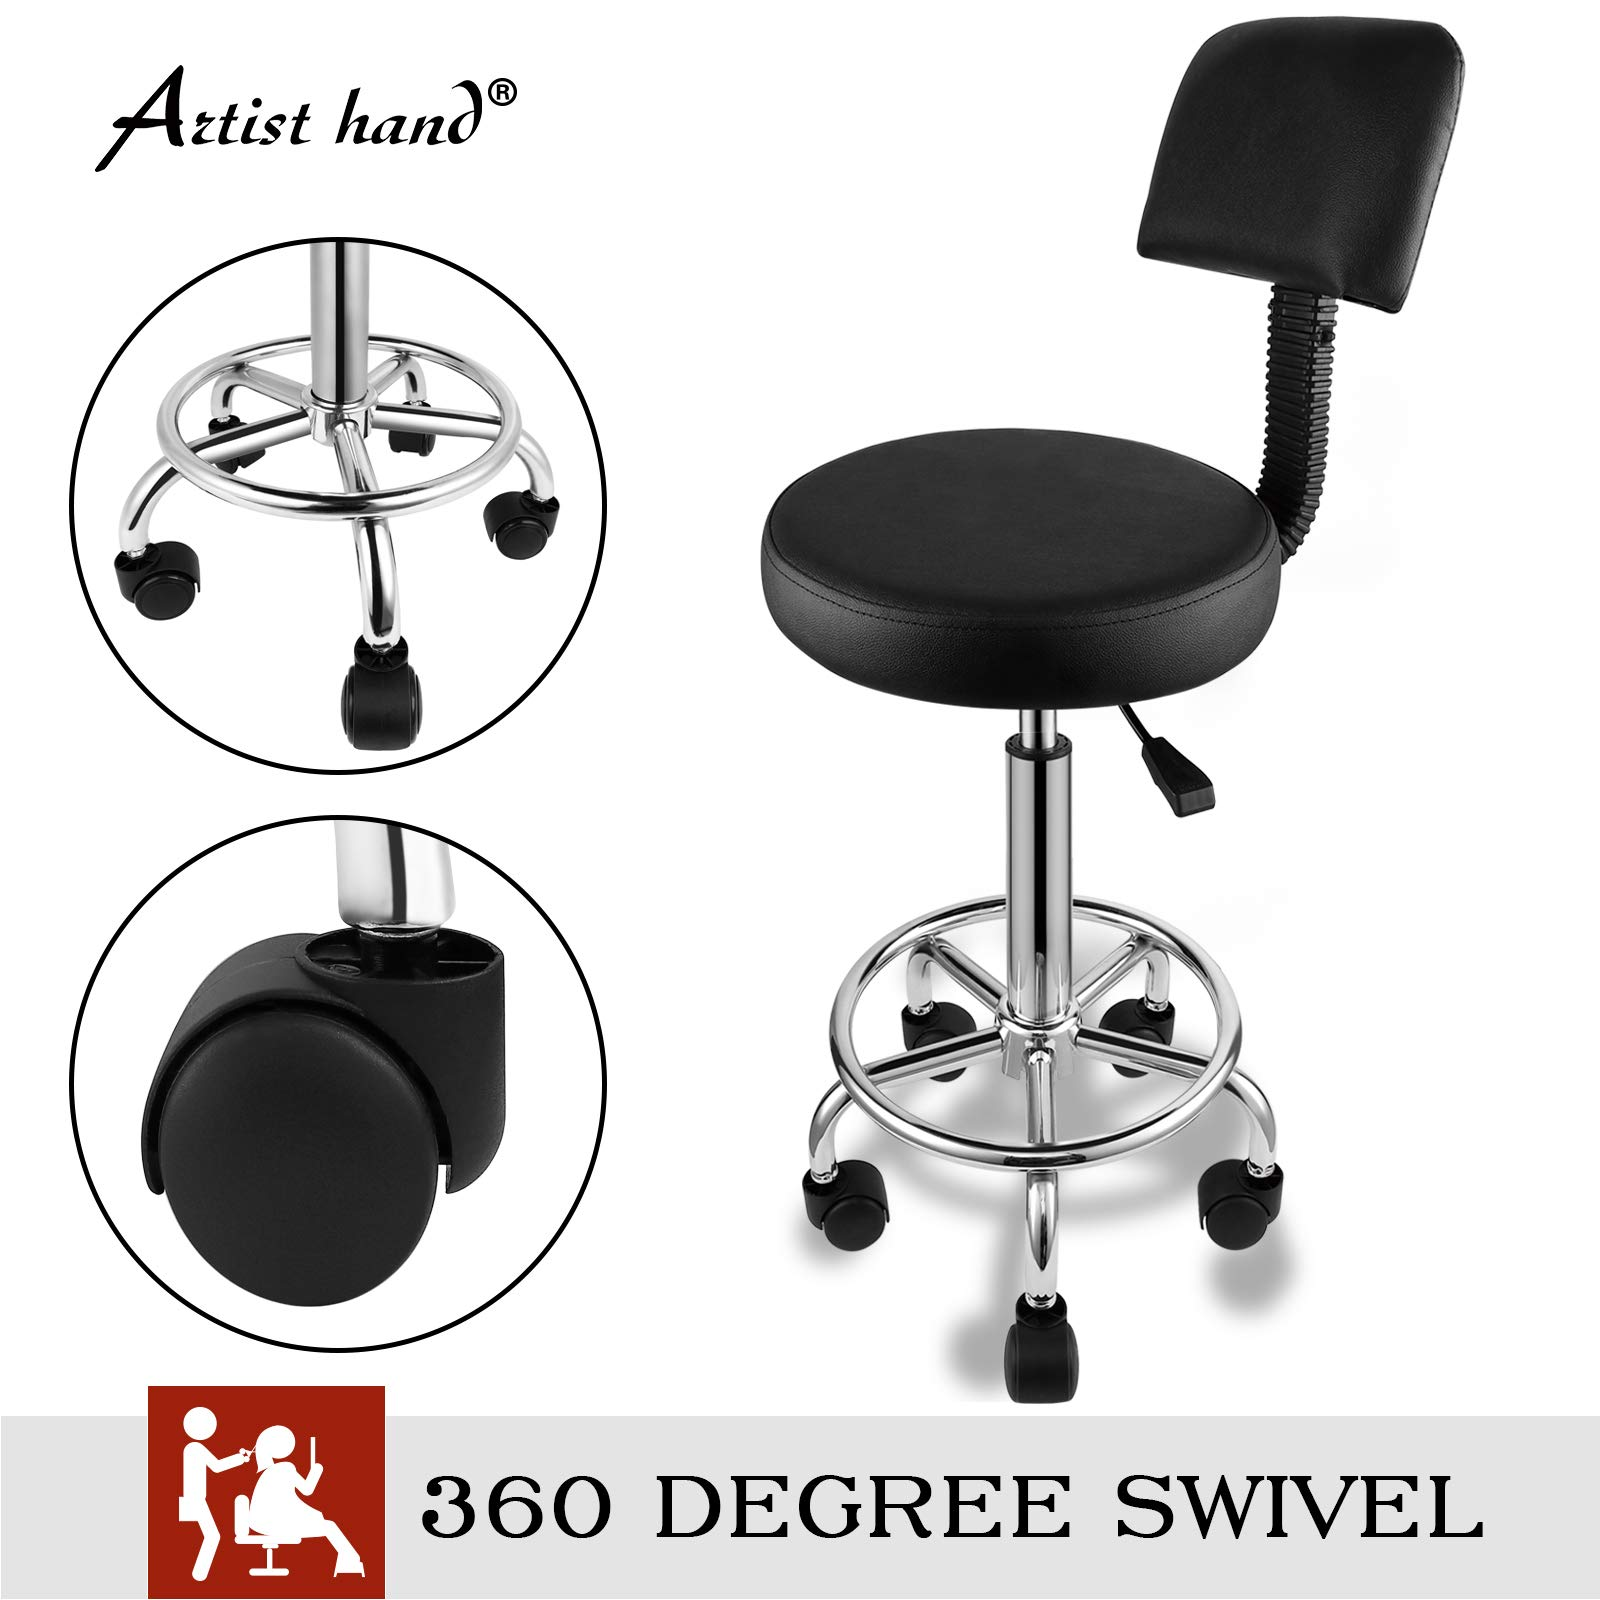 Artist Hand Adjustable Hydraulic Rolling Swivel Salon Stool 360 Degrees Swivel Hair Salon Stool Chair Tattoo Spa Barber Stool Chairs With Backrest Chrome Steel Frame Black